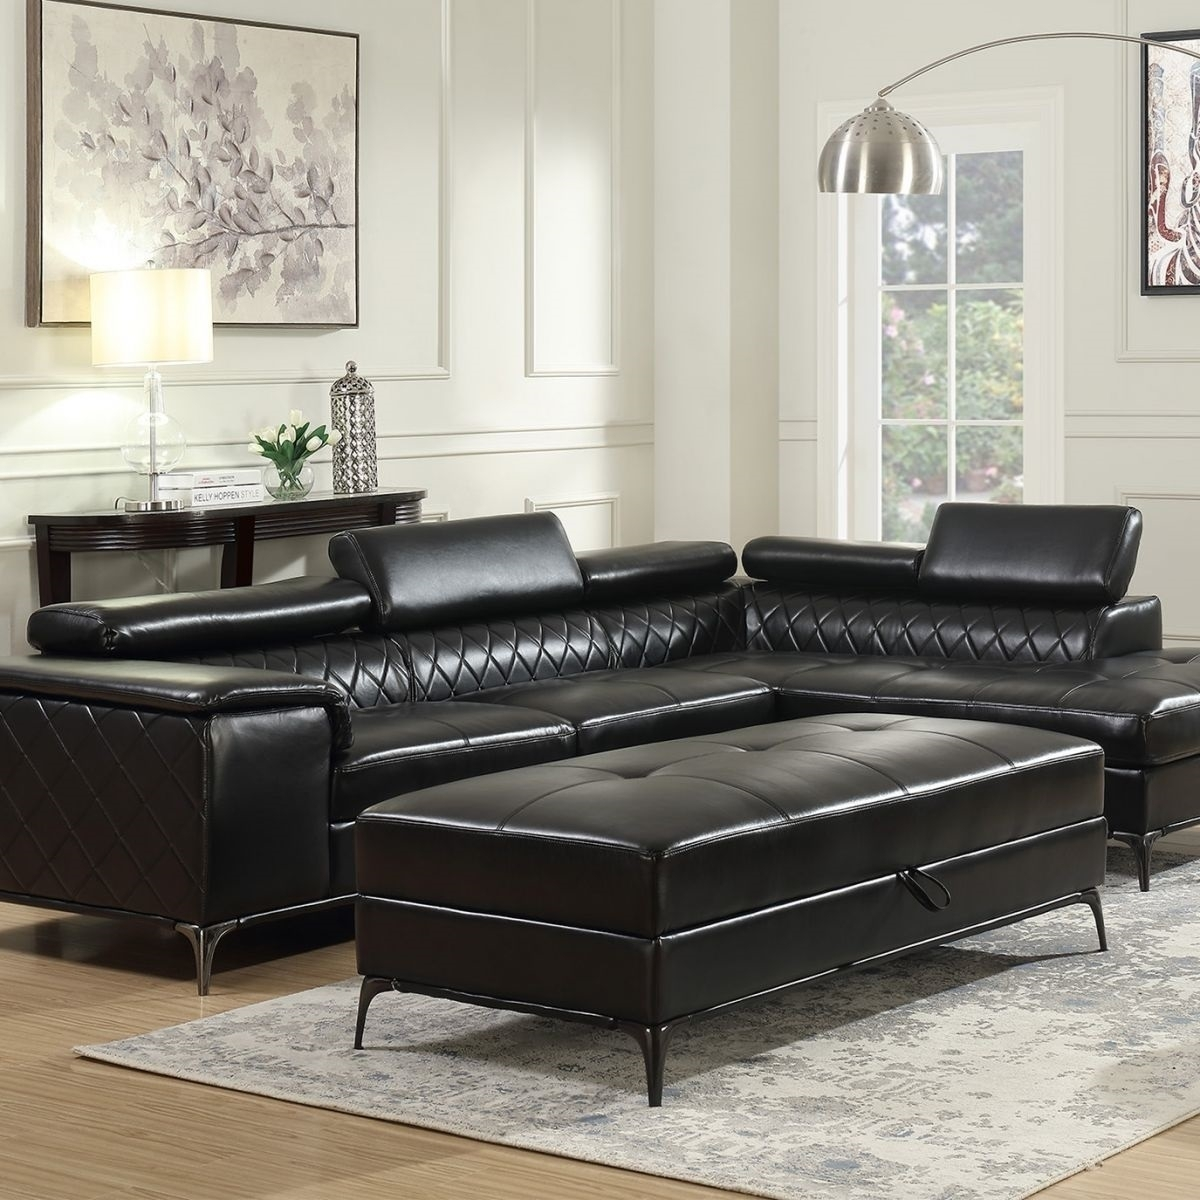 Worthington Black 2 Pc Sectional & Ottoman | Badcock & More for Cosmos Grey 2 Piece Sectionals With Raf Chaise (Image 29 of 30)